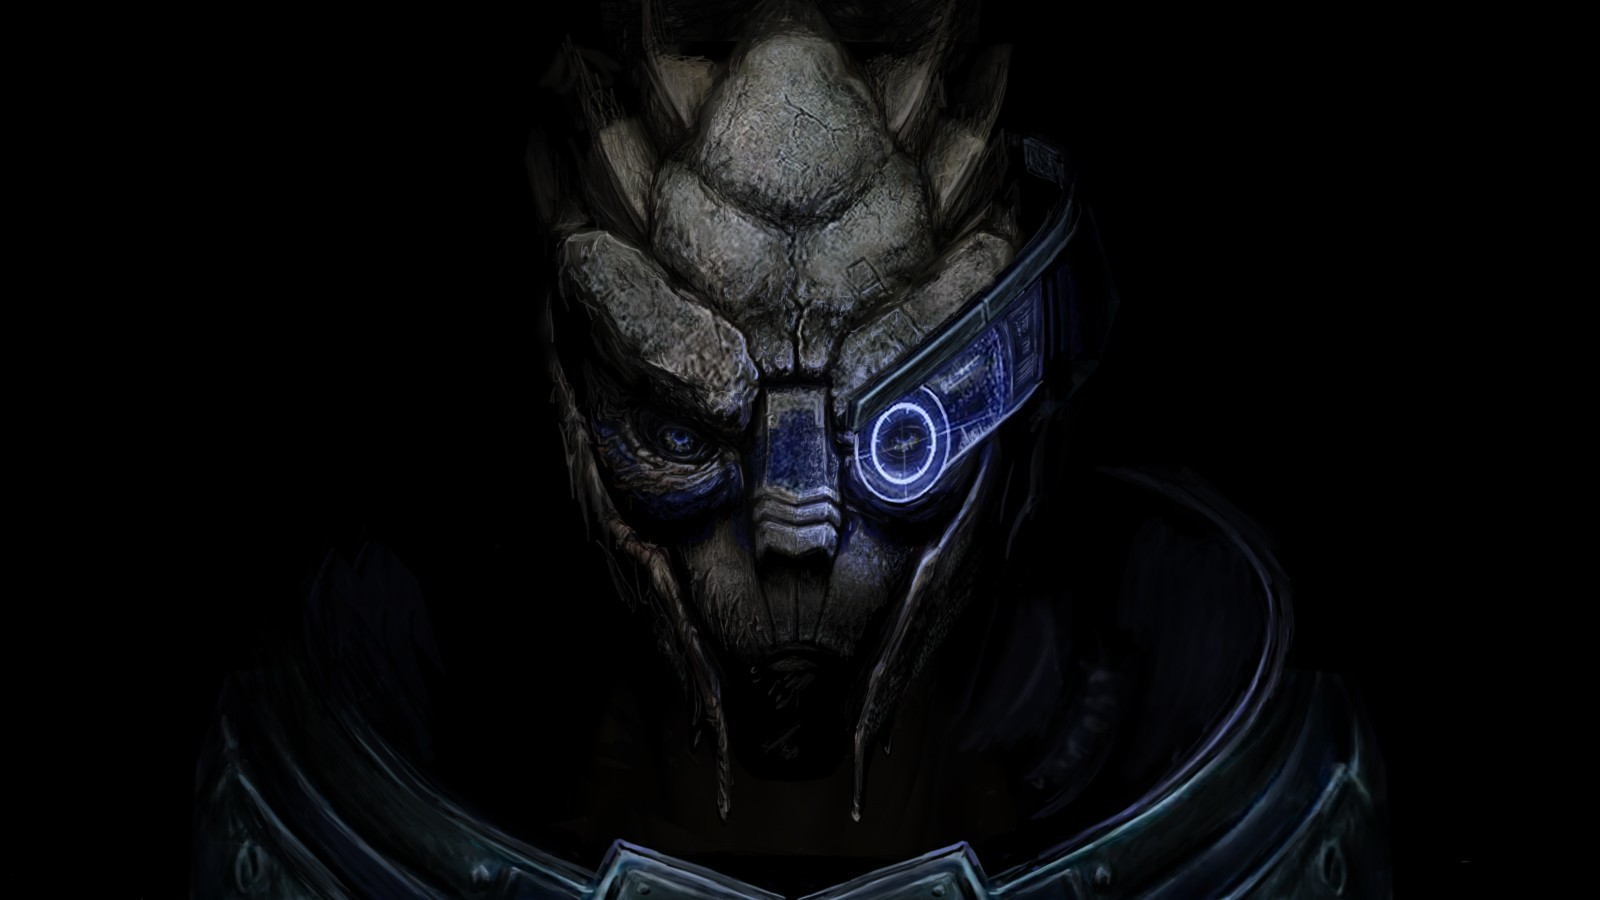 50 4k Hd Mass Effect Wallpapers 1920x1080 2020 Www Movierulz